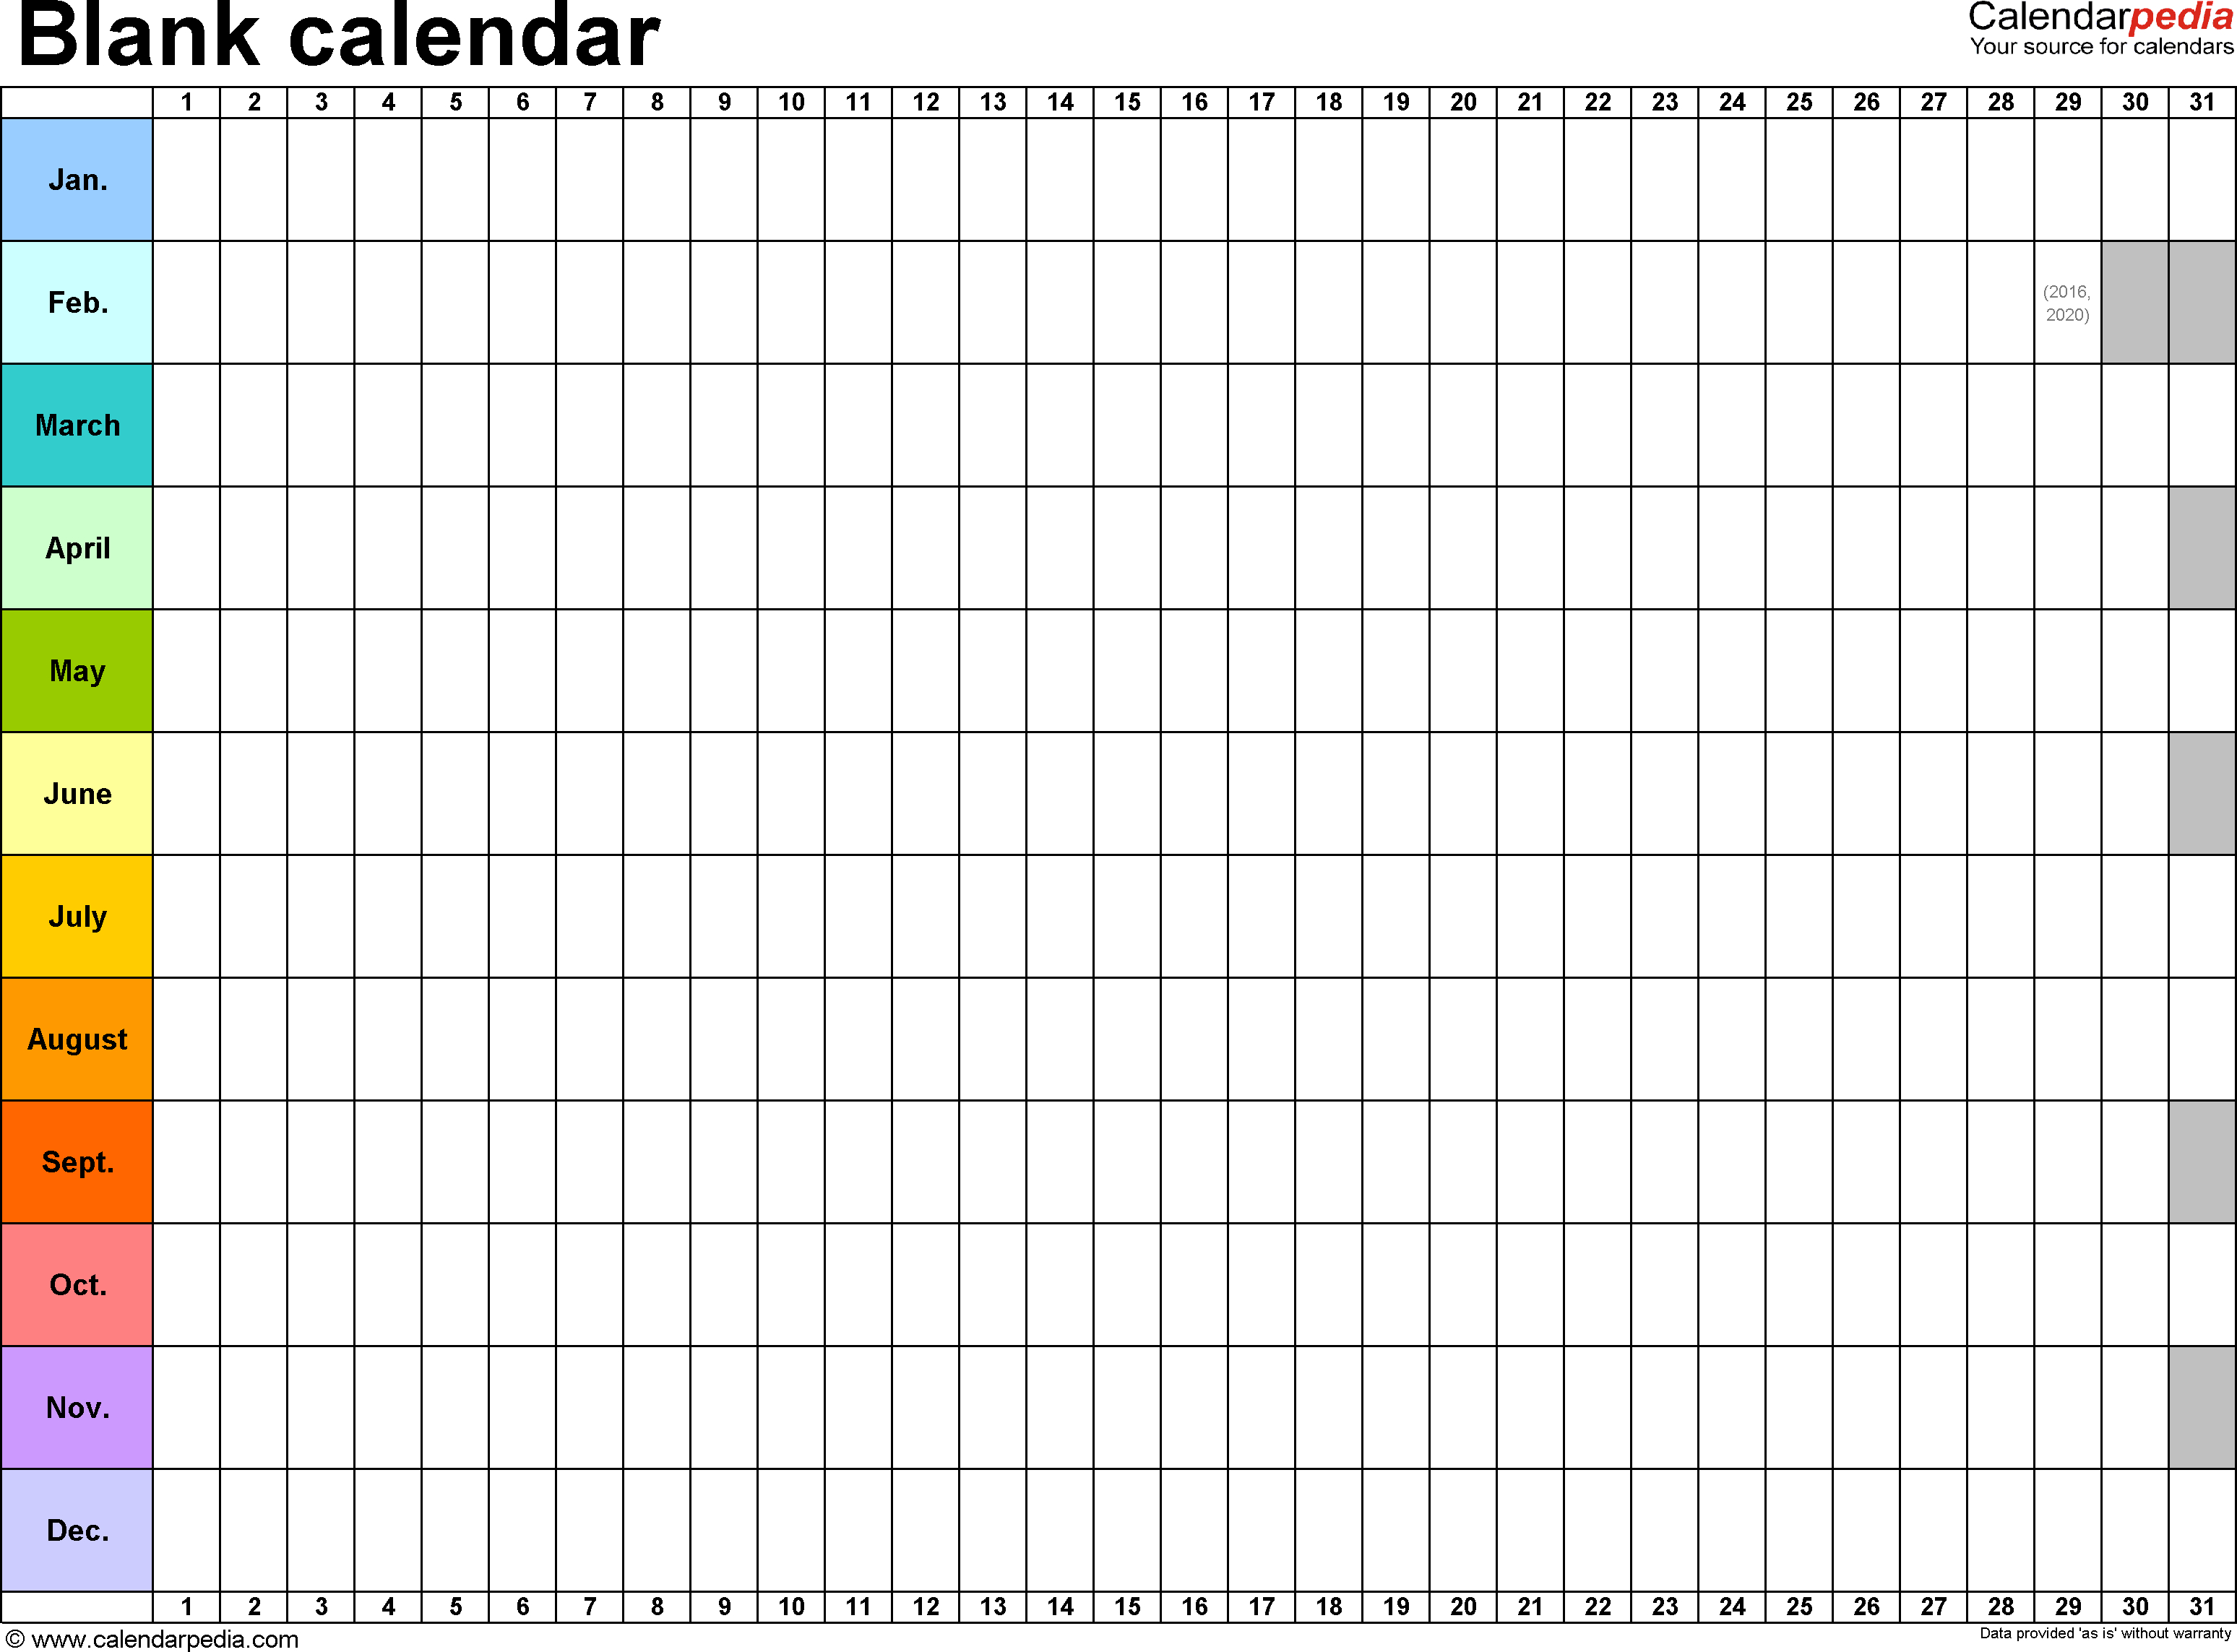 Blank Calendar - 9 Free Printable Microsoft Word Templates for Blank Year Calendar On One Page